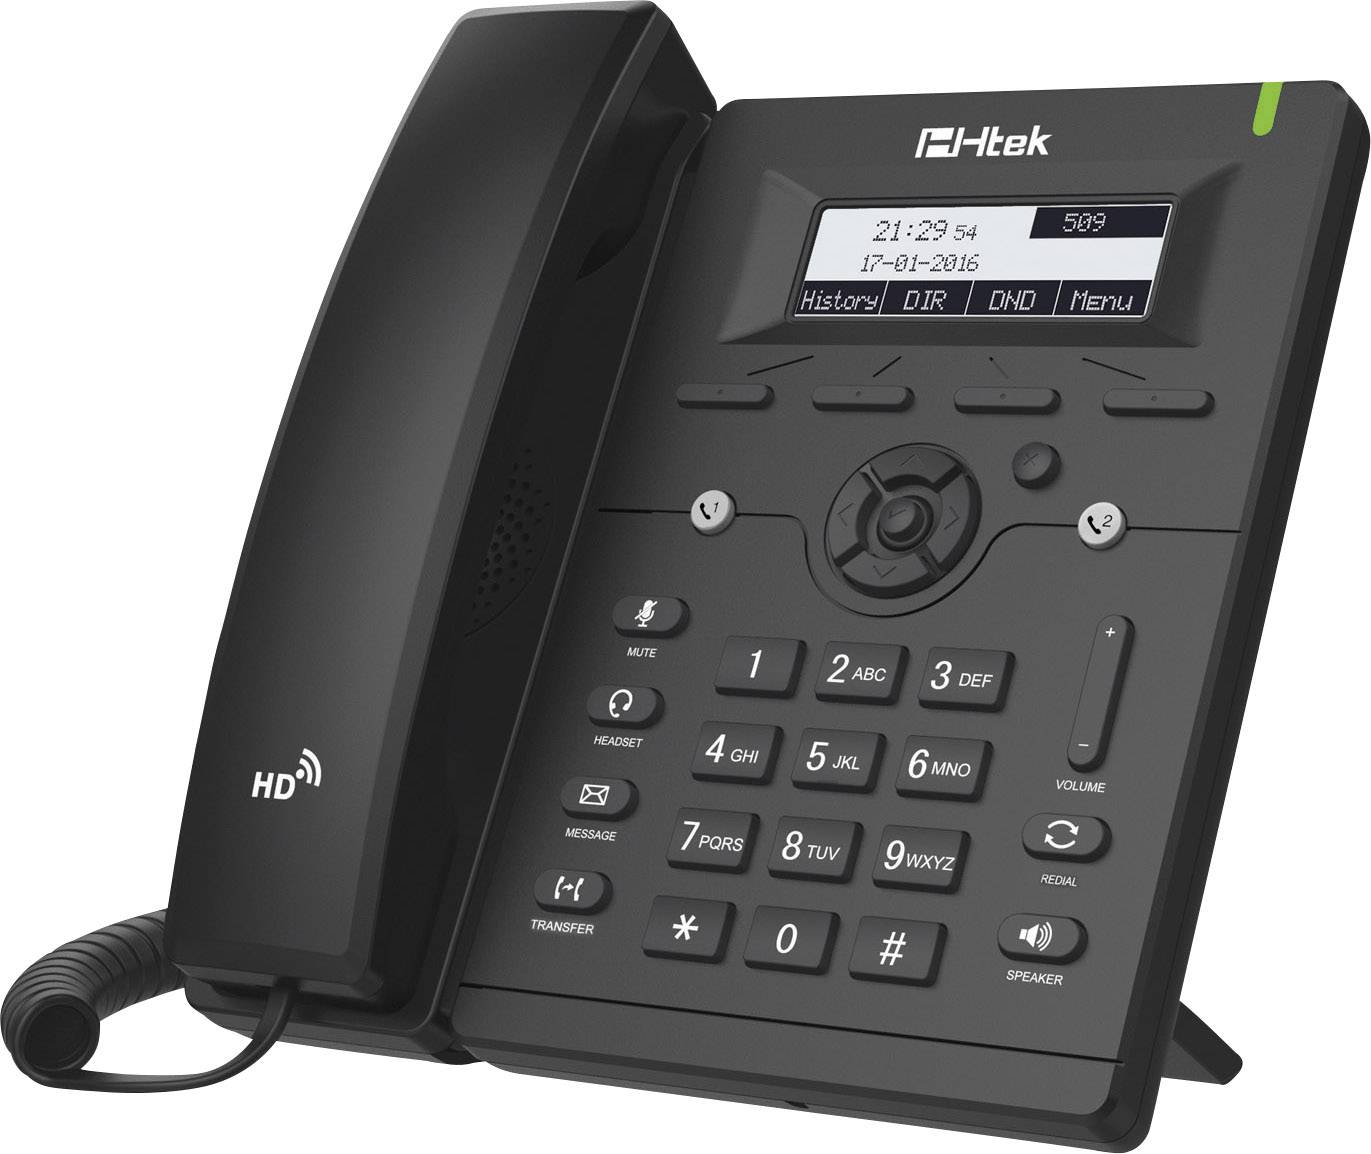 Telefono a filo VoIP TipTel Ht